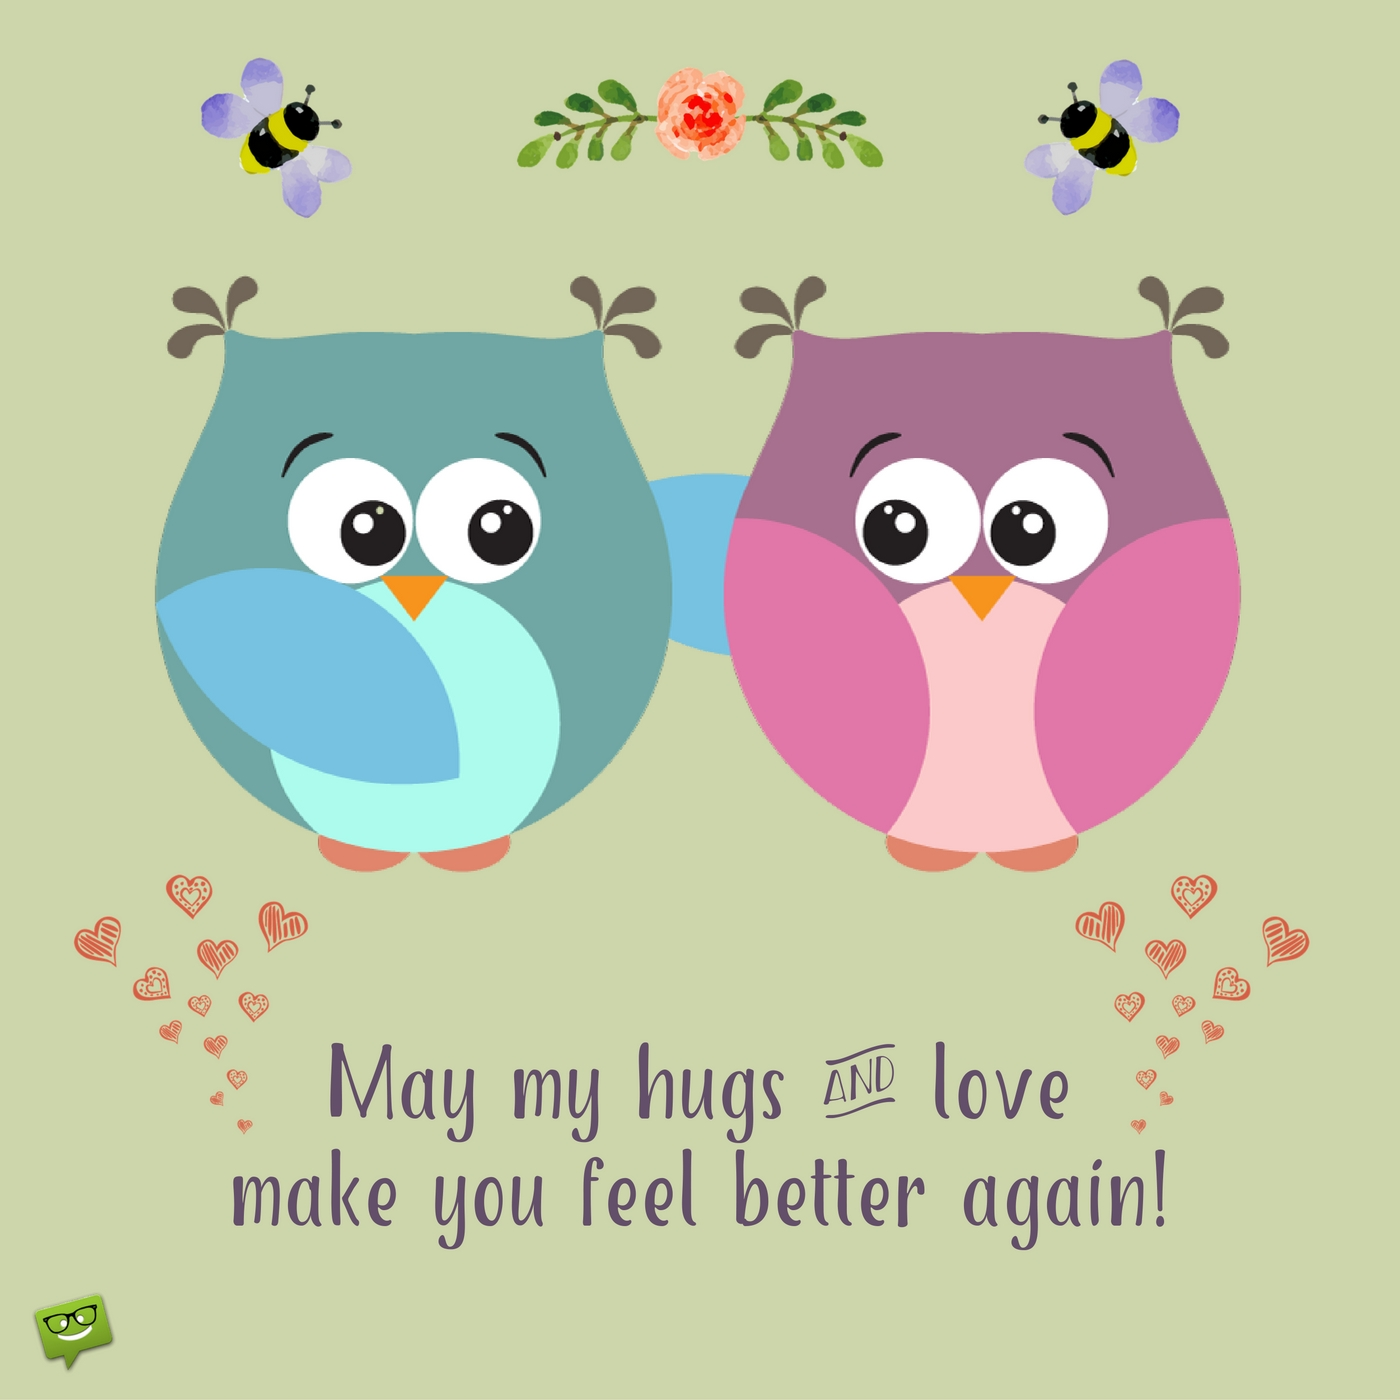 Hugging clipart feel good. Free healing wishes cliparts